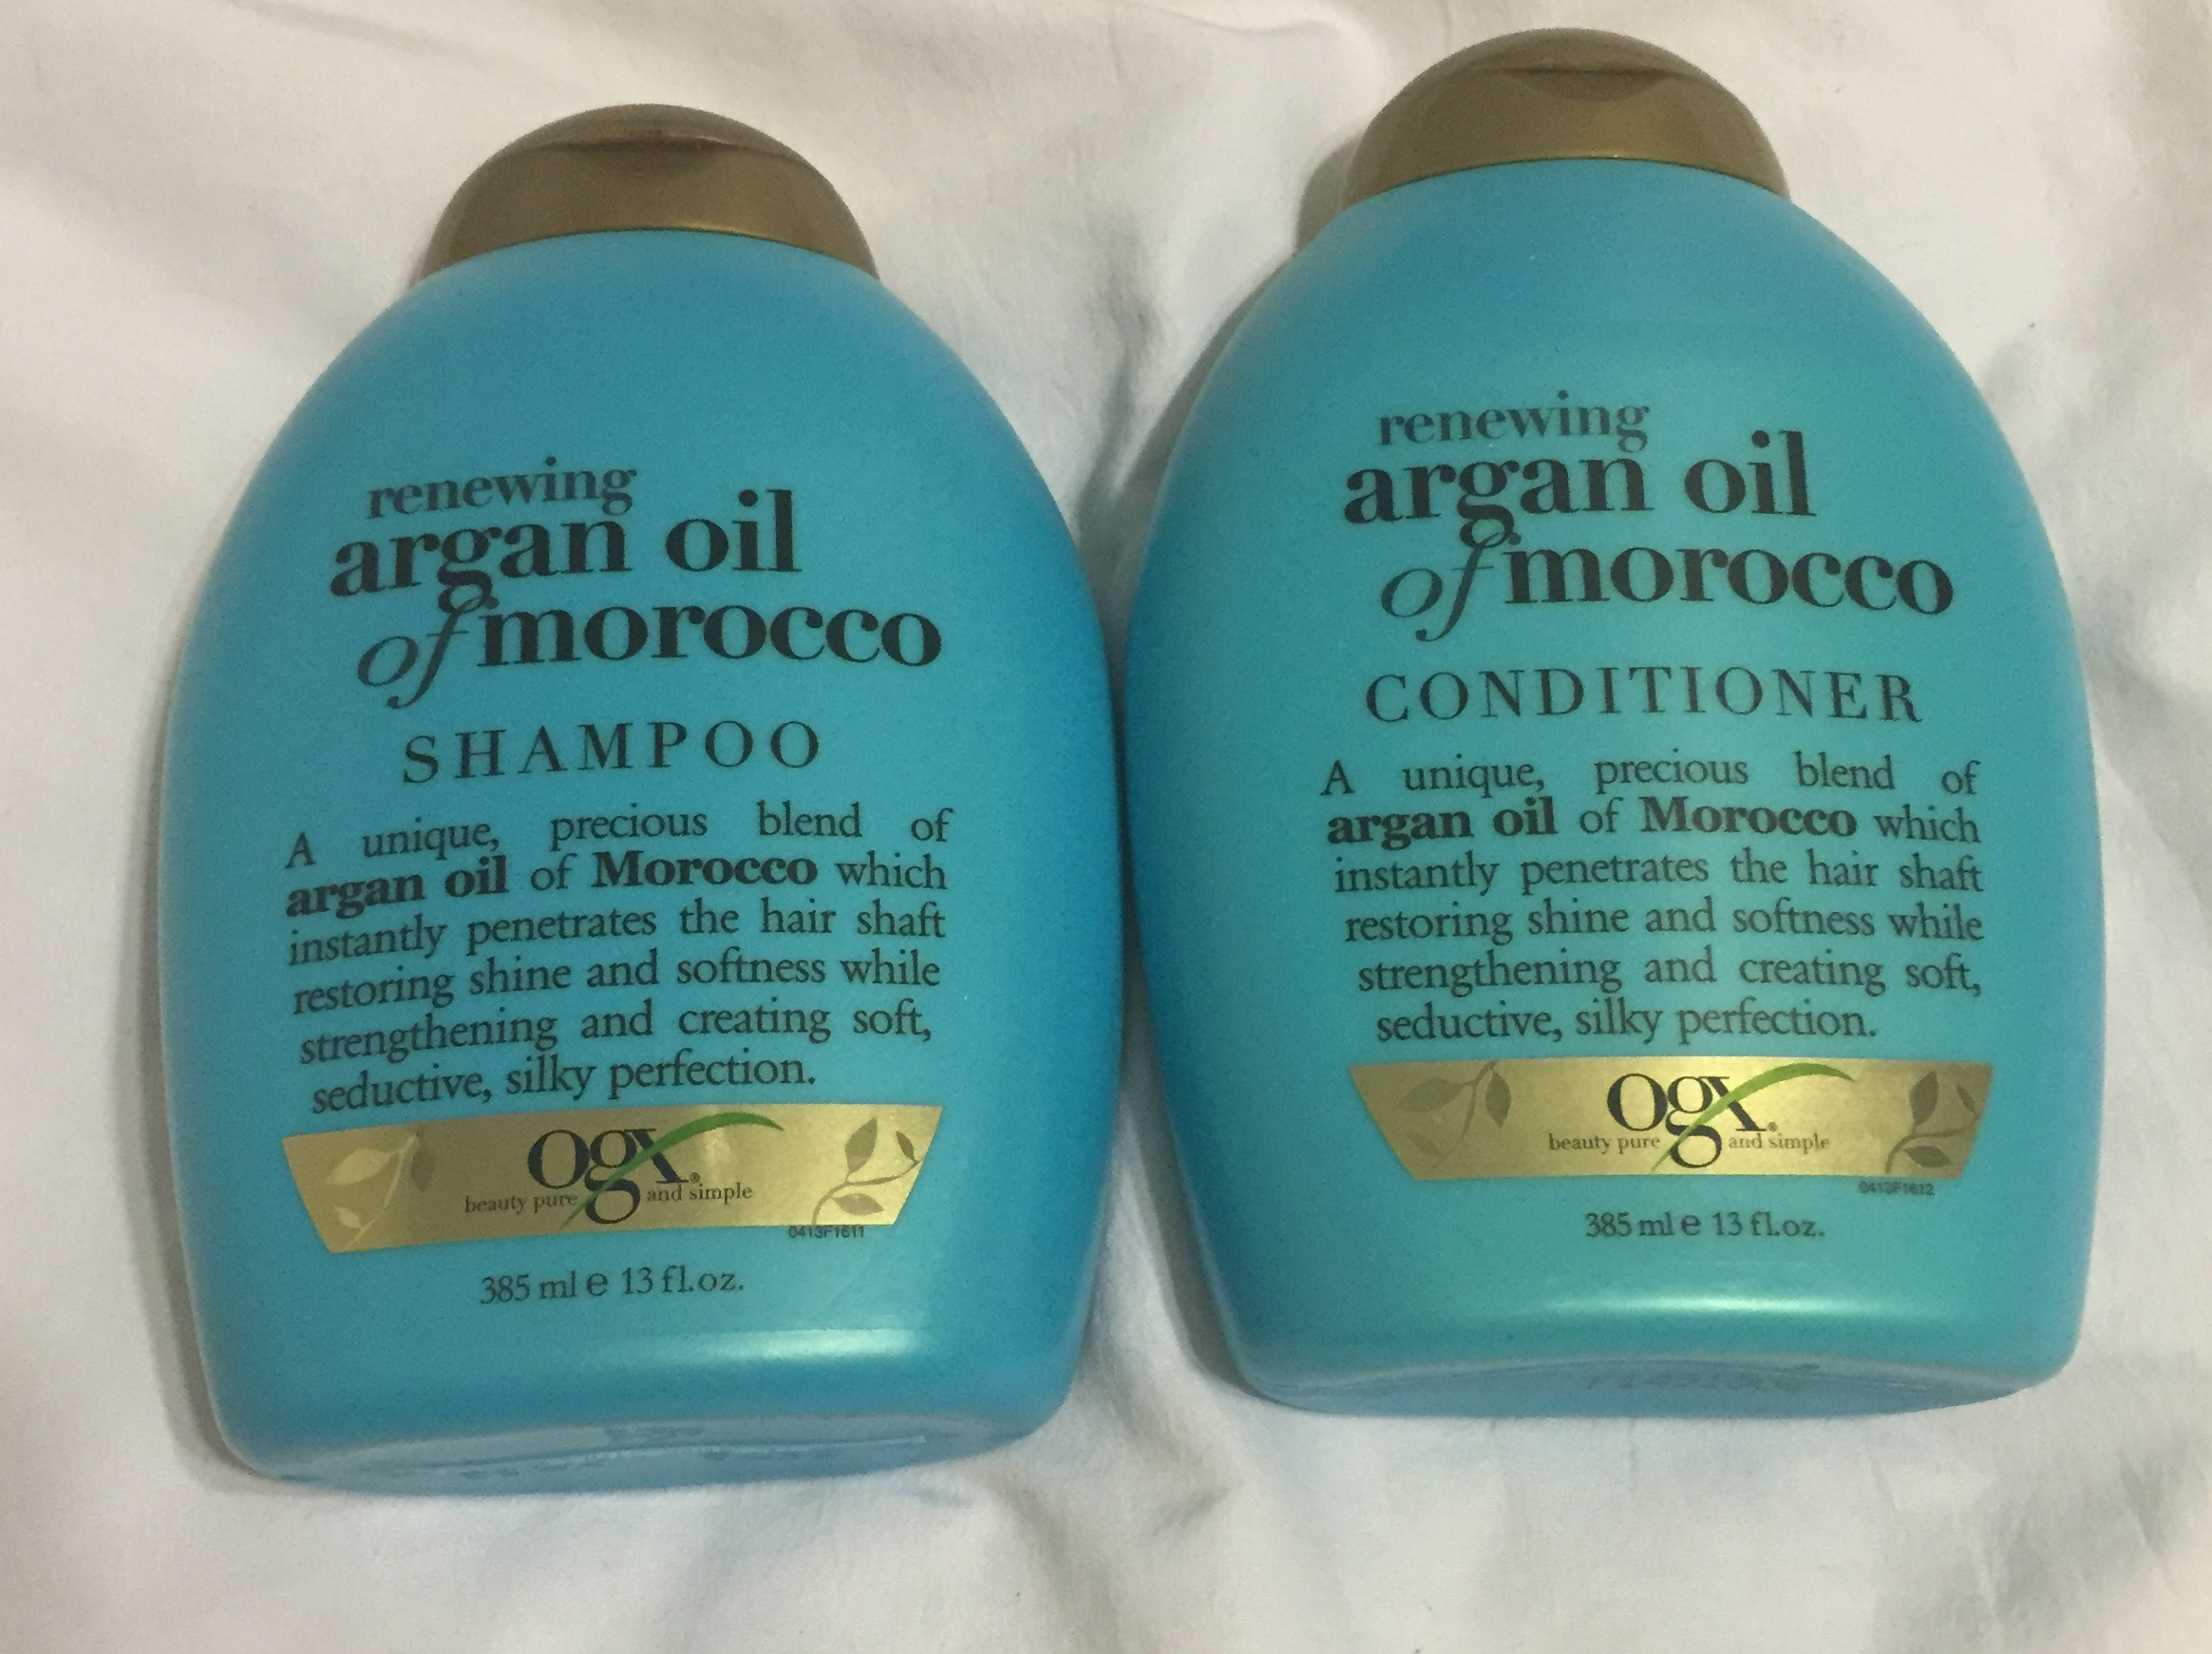 moroccan oil shampoo and conditioner reviews